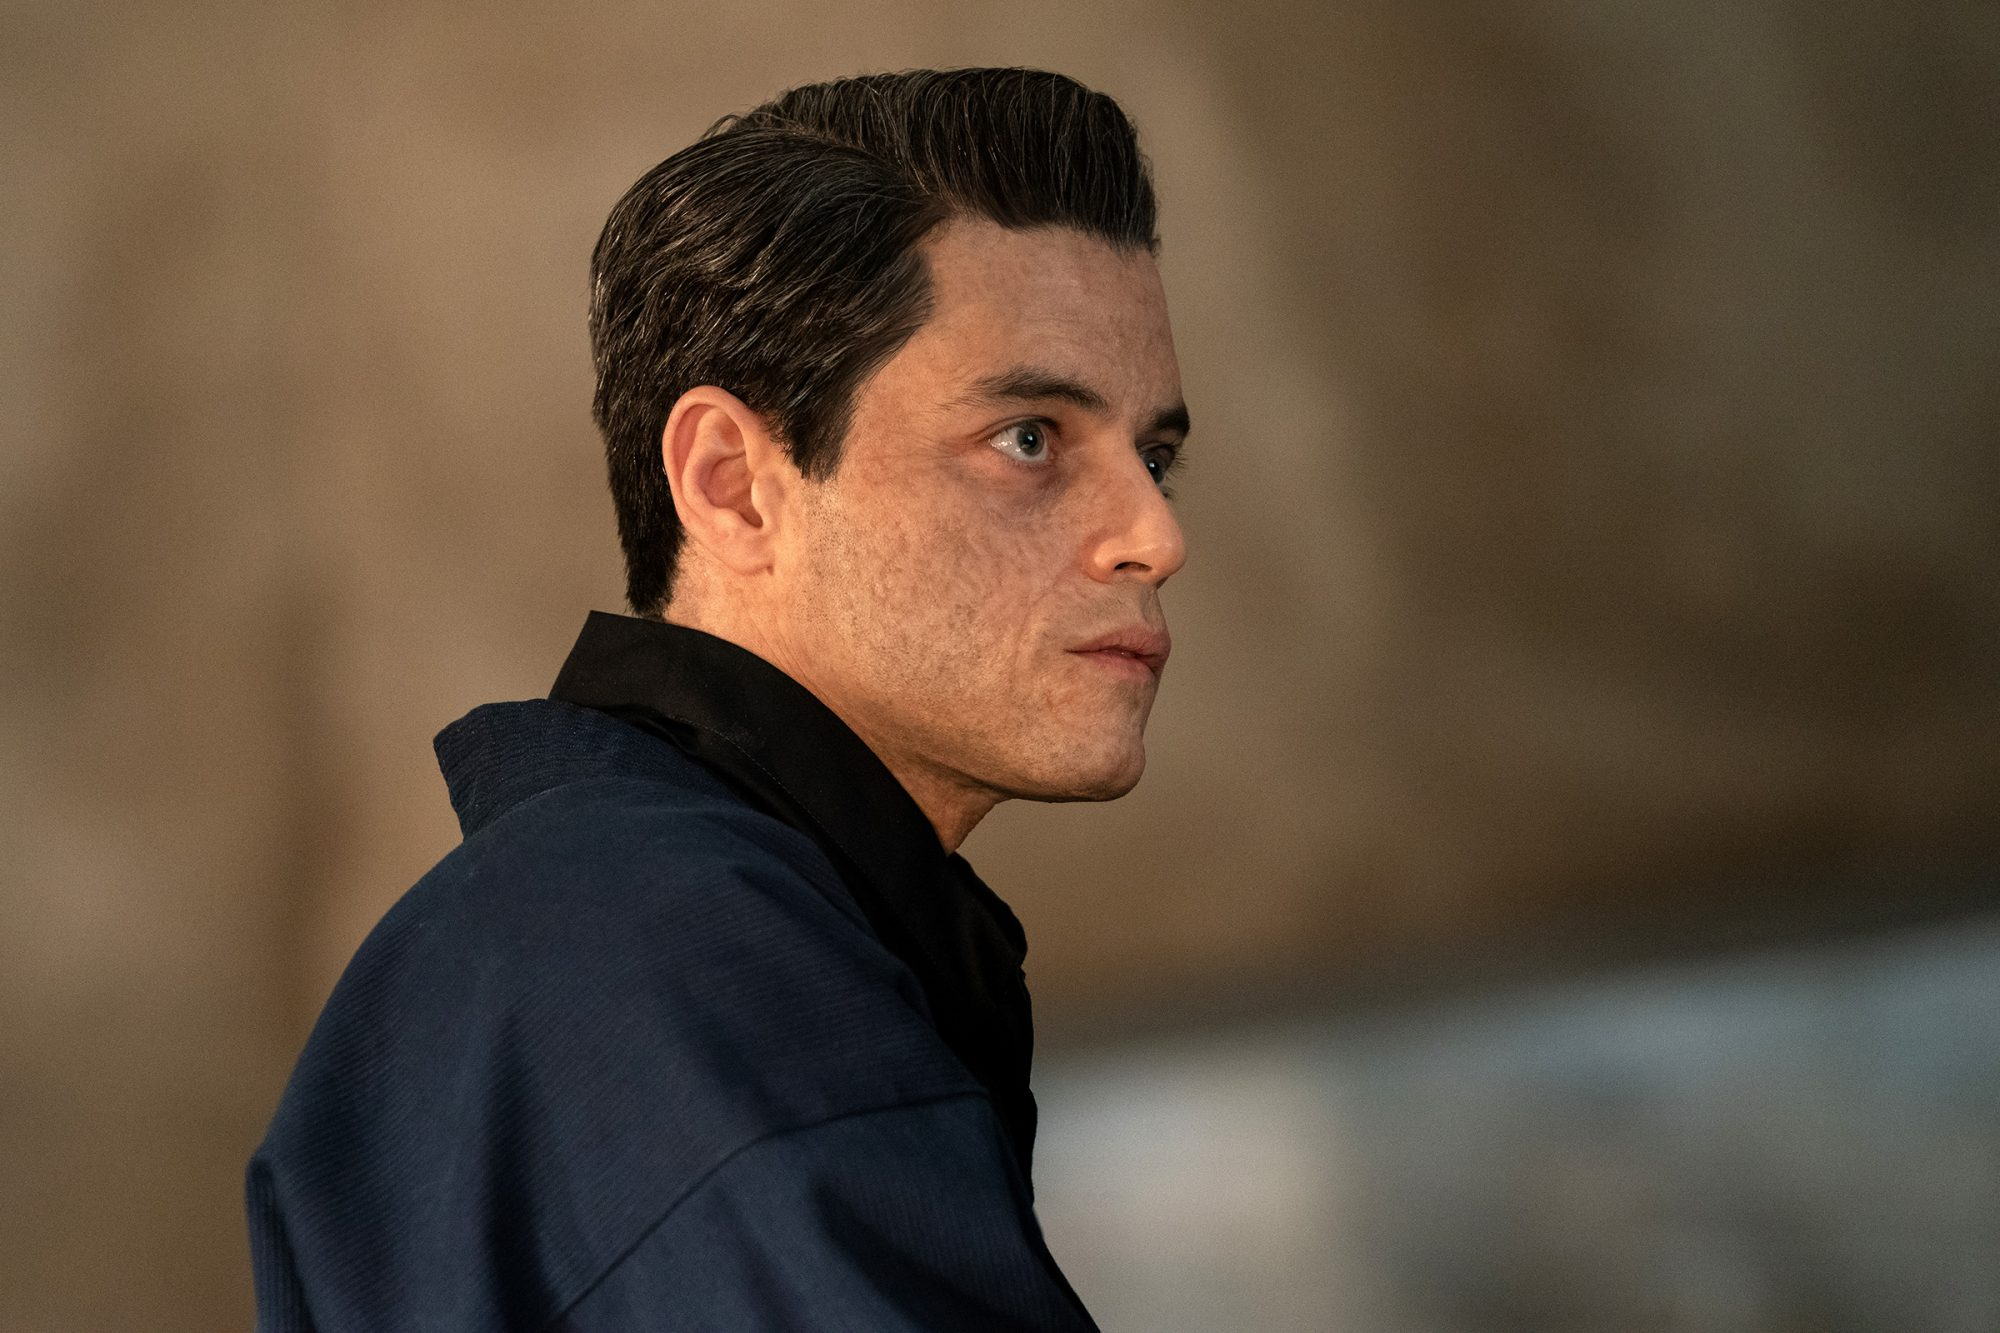 Safin (Rami Malek) in NO TIME TO DIE, a DANJAQ and Metro Goldwyn Mayer Pictures film